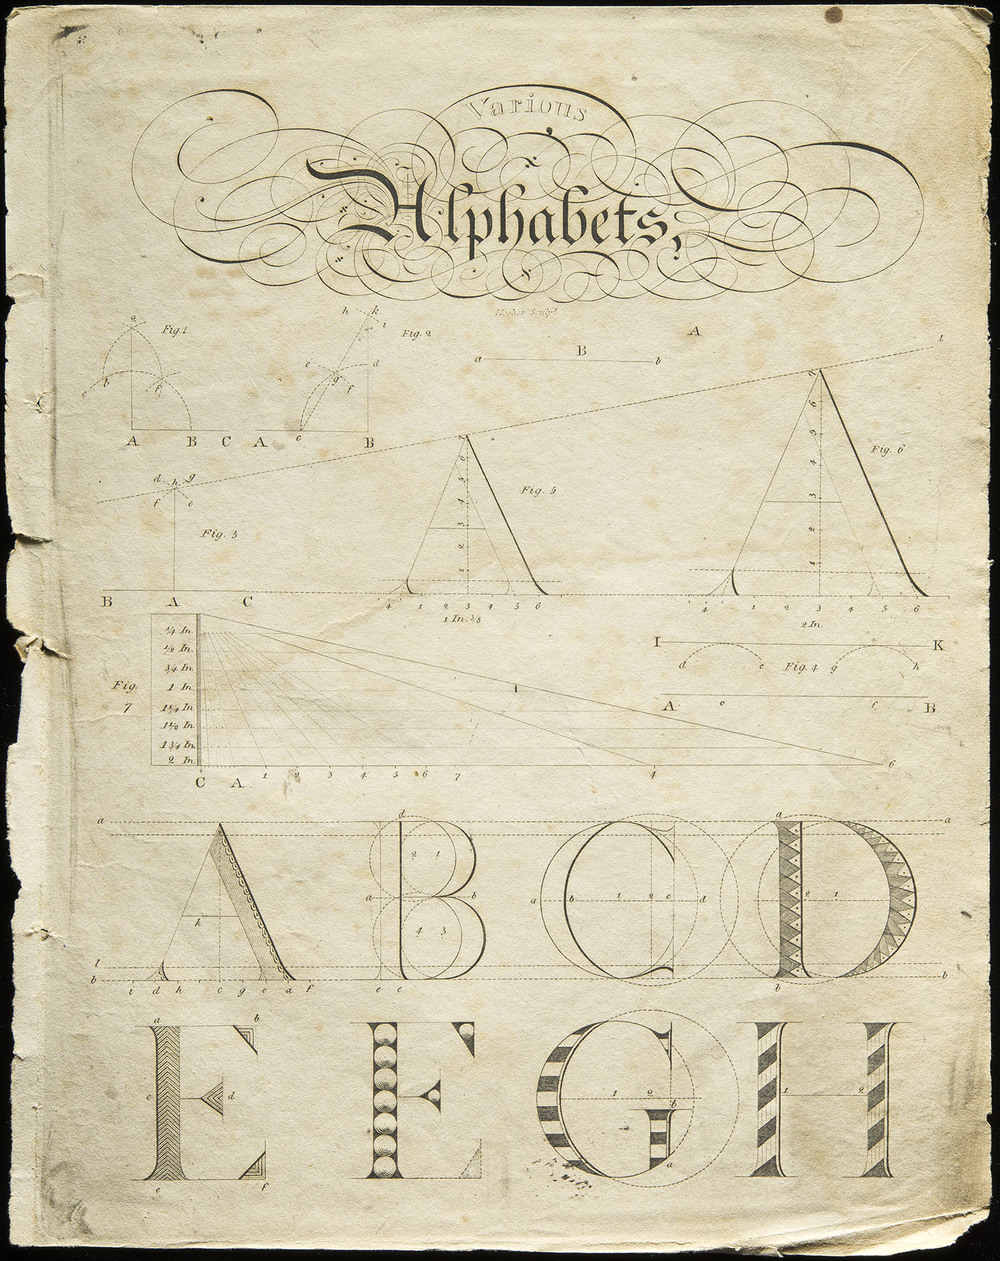 Henry Dean,  Dean's Analytical Guide to the Art of Penmanship , Joshua Cushing, Salem MA, 1804, 21 x 27 cm